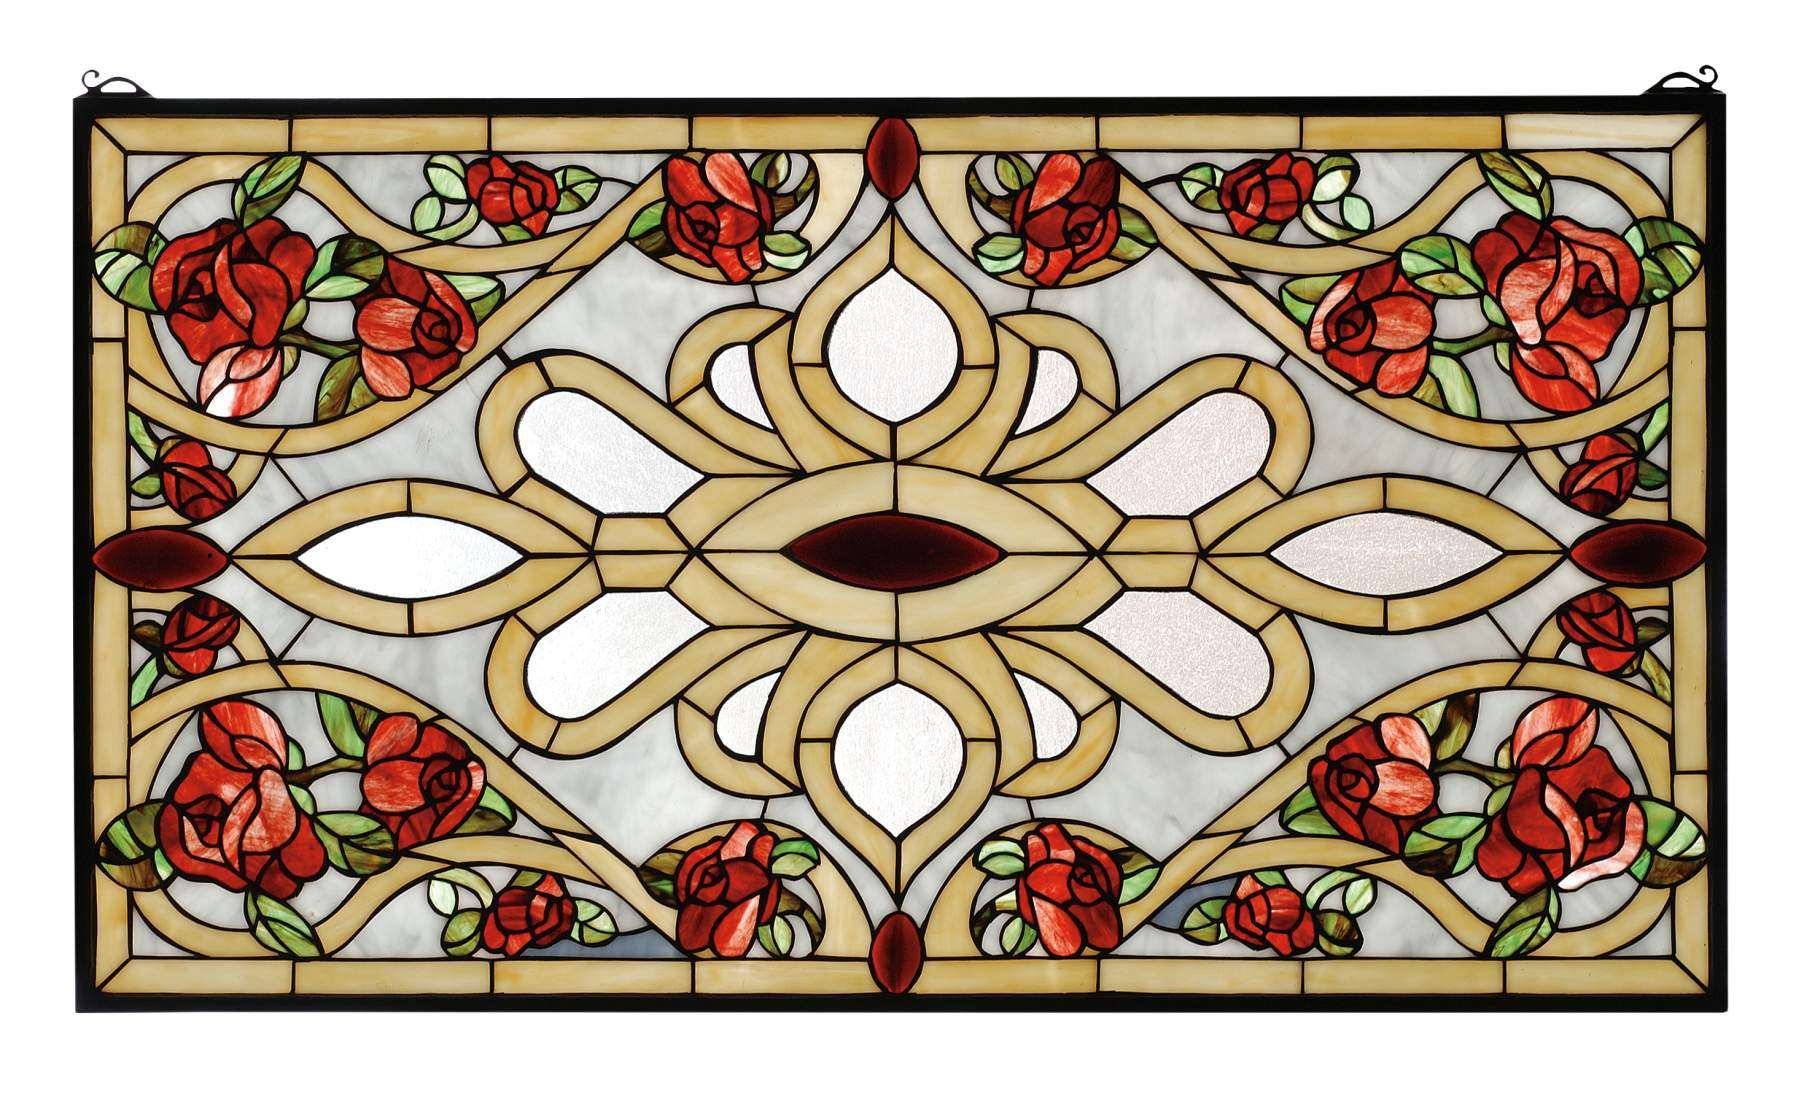 Meyda Tiffany 67139 Bed Of Roses Stained Glass Window in Copperfoil finish